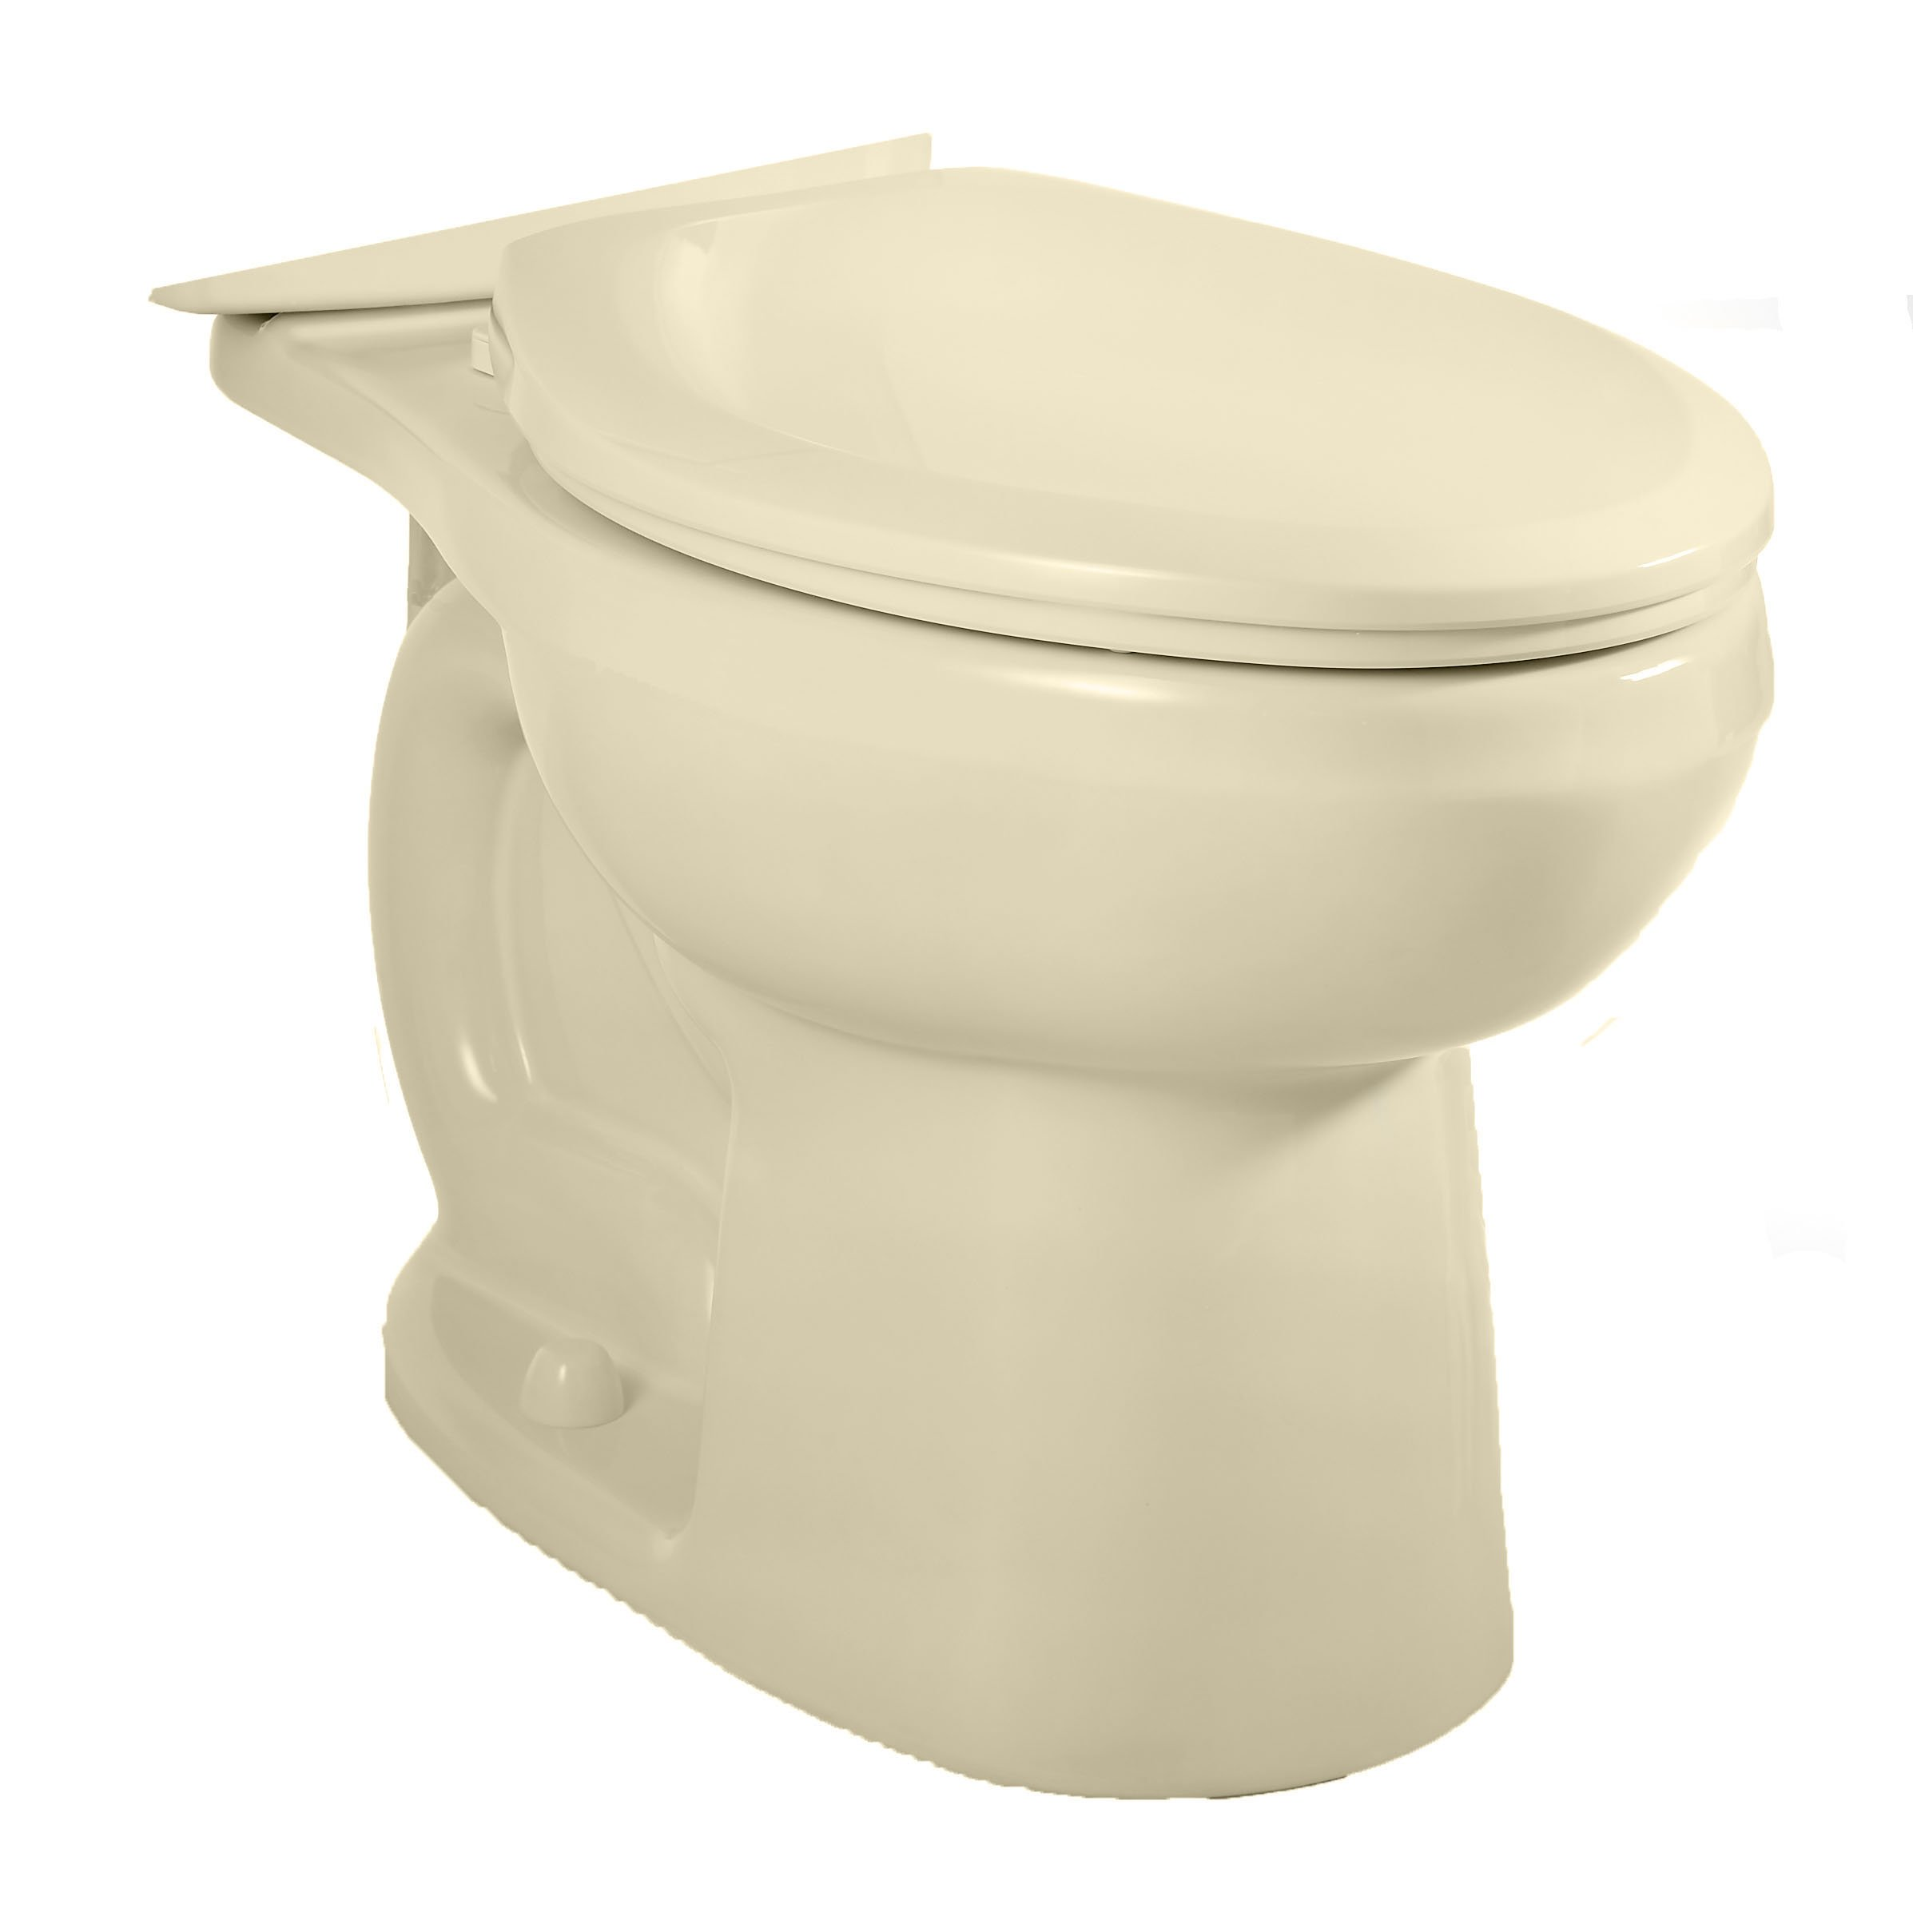 American Standard 3706.216.021 H2Option Siphonic Dual Flush Elongated Toilet Bowl, Bone (Bowl Only)